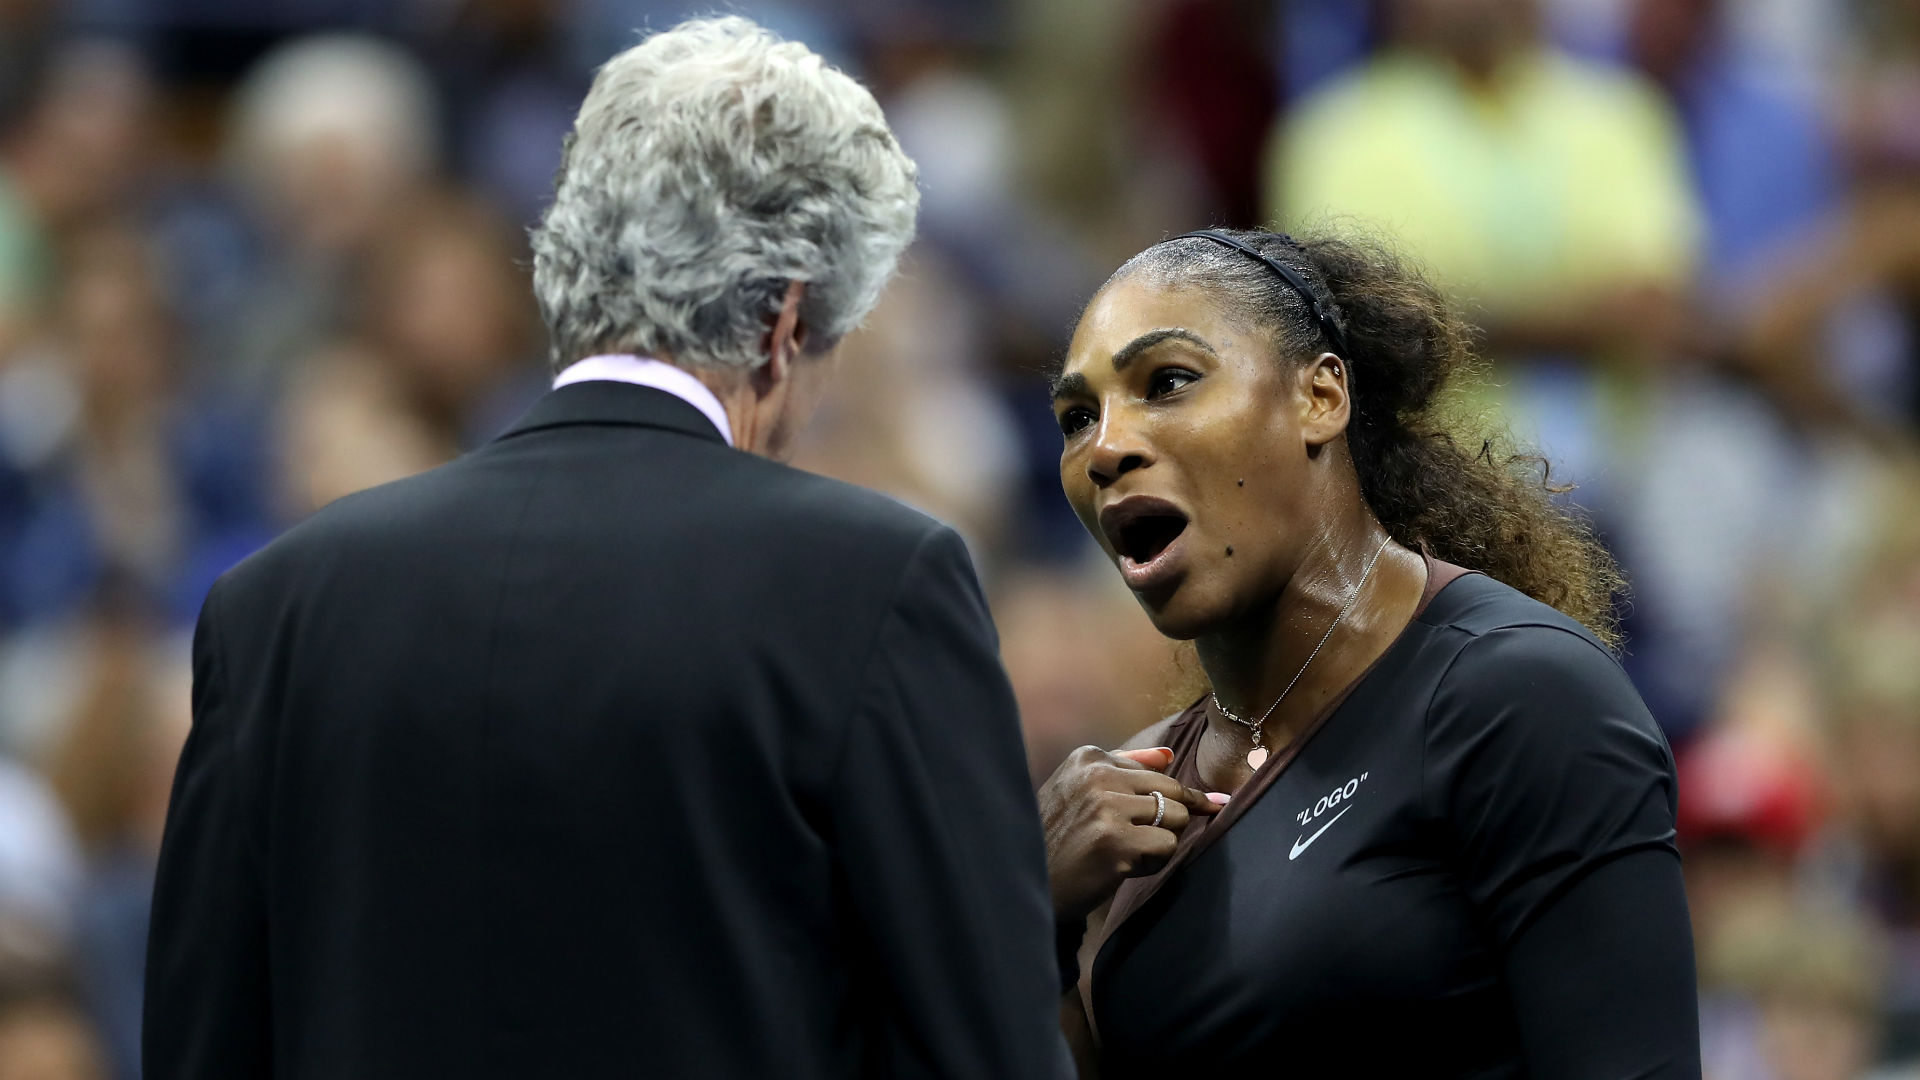 John McEnroe defends Serena Williams: 'I have said far worse'